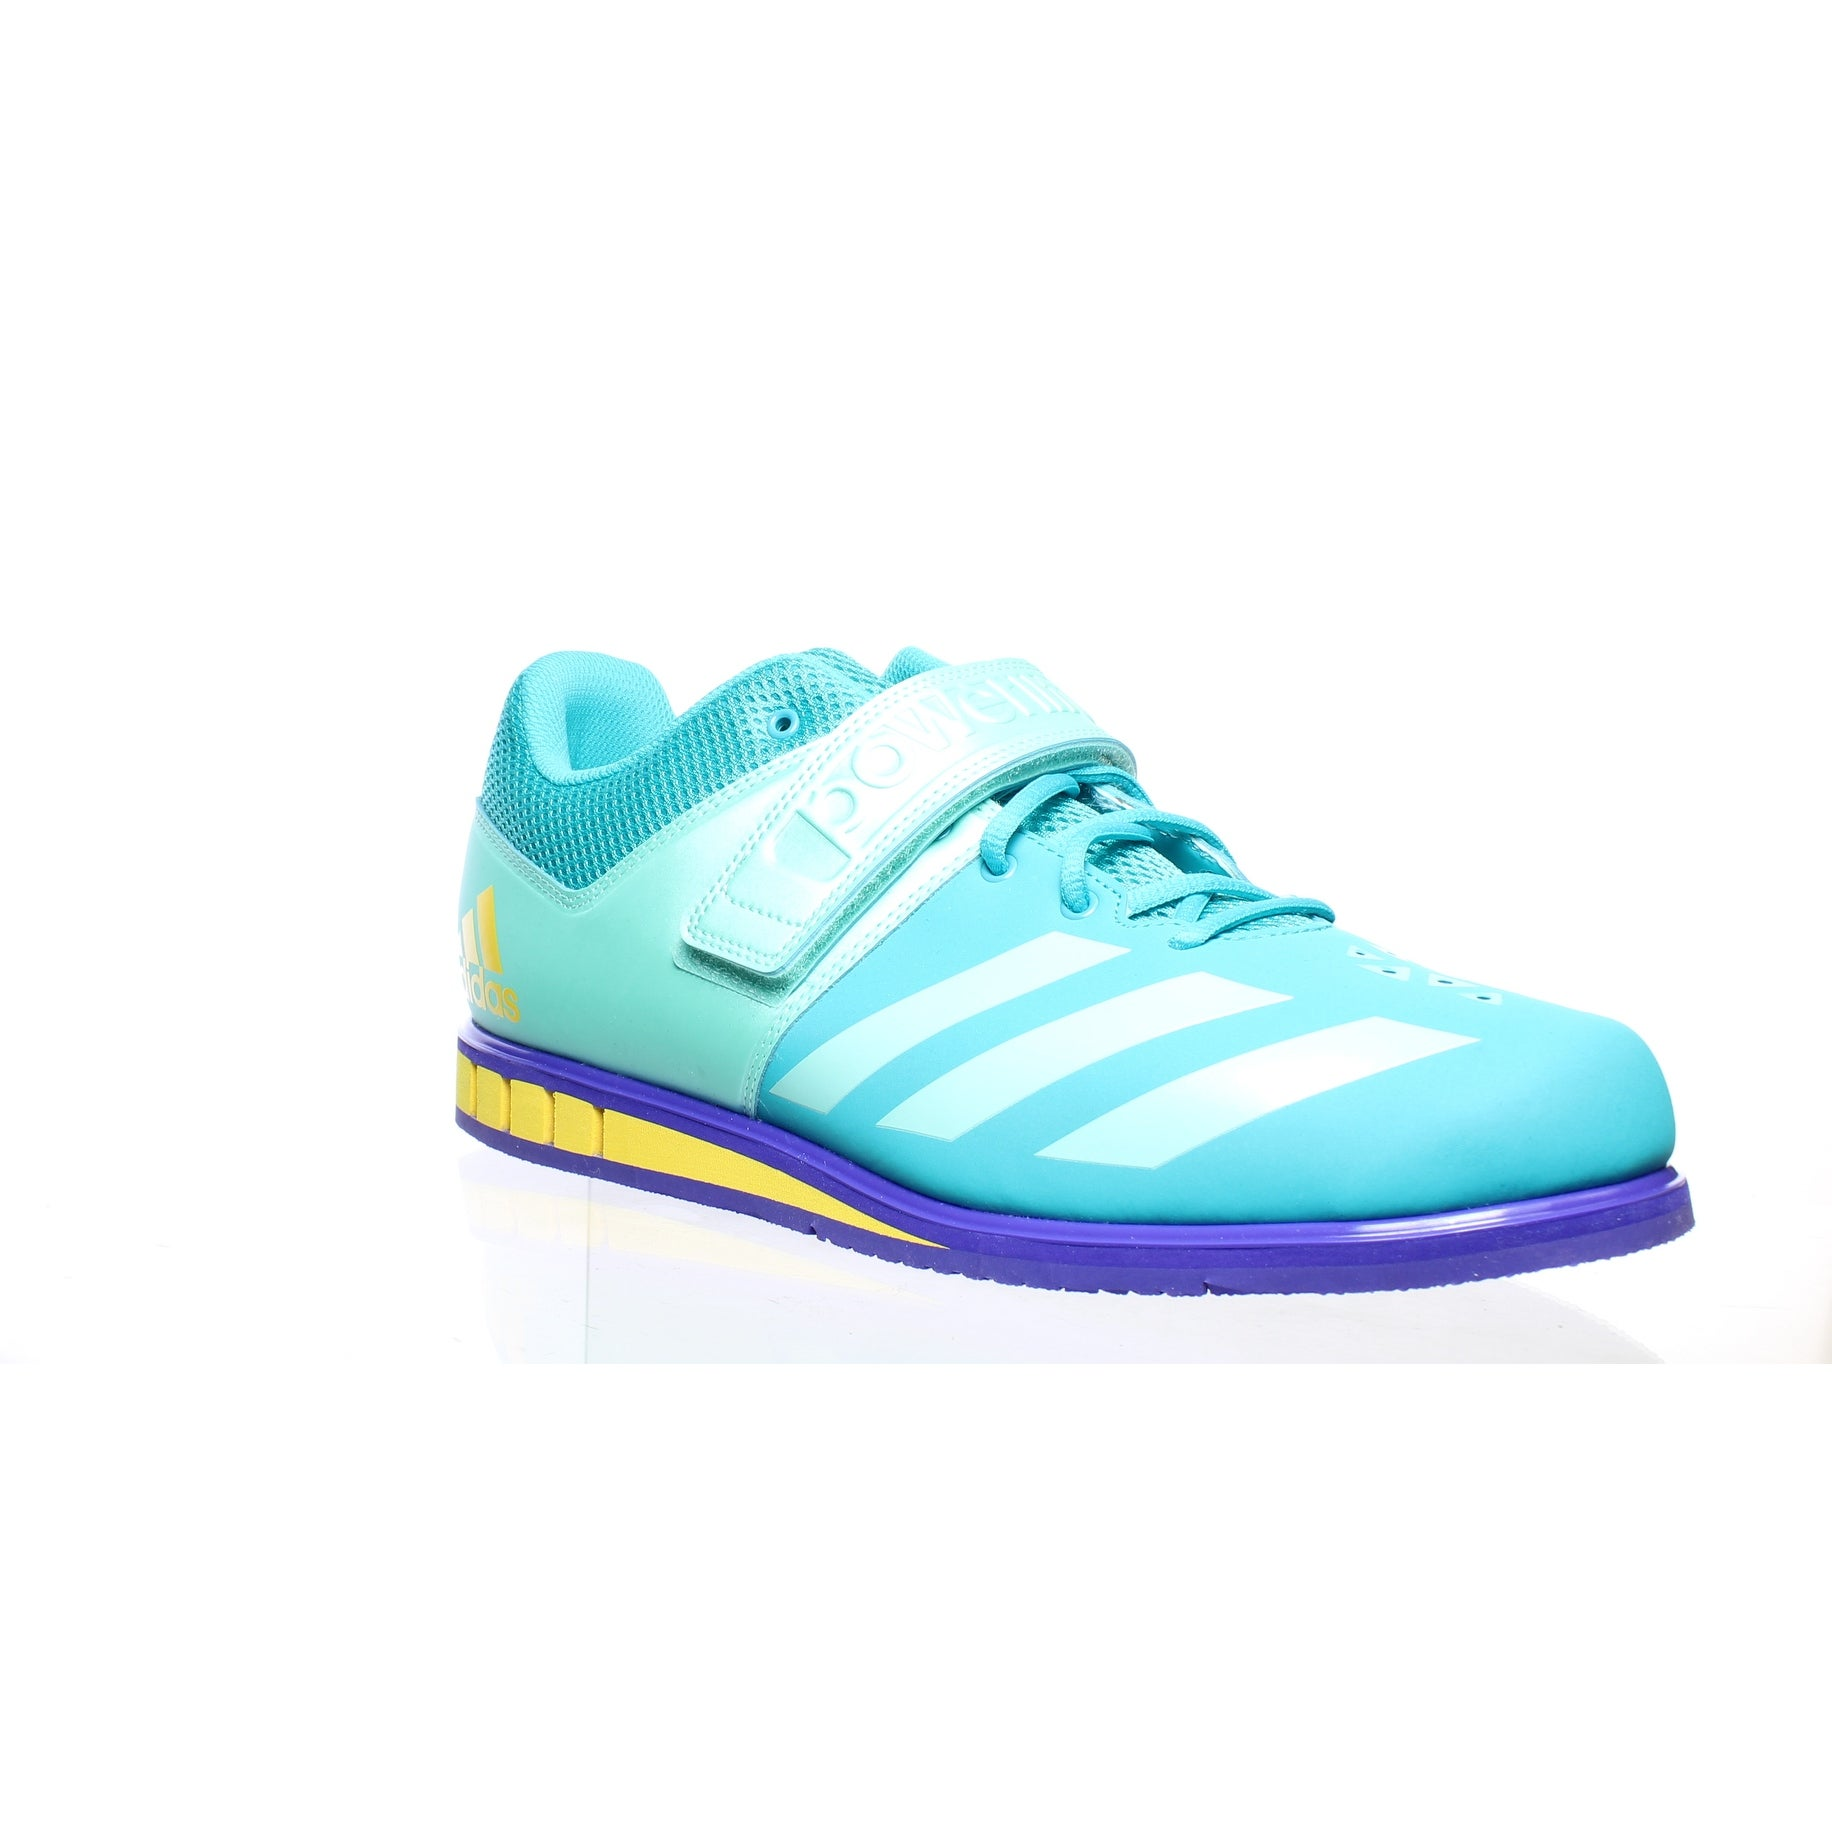 Adidas Womens Powerlift 3.1 Blue Weightlifting Shoes Size 14.5